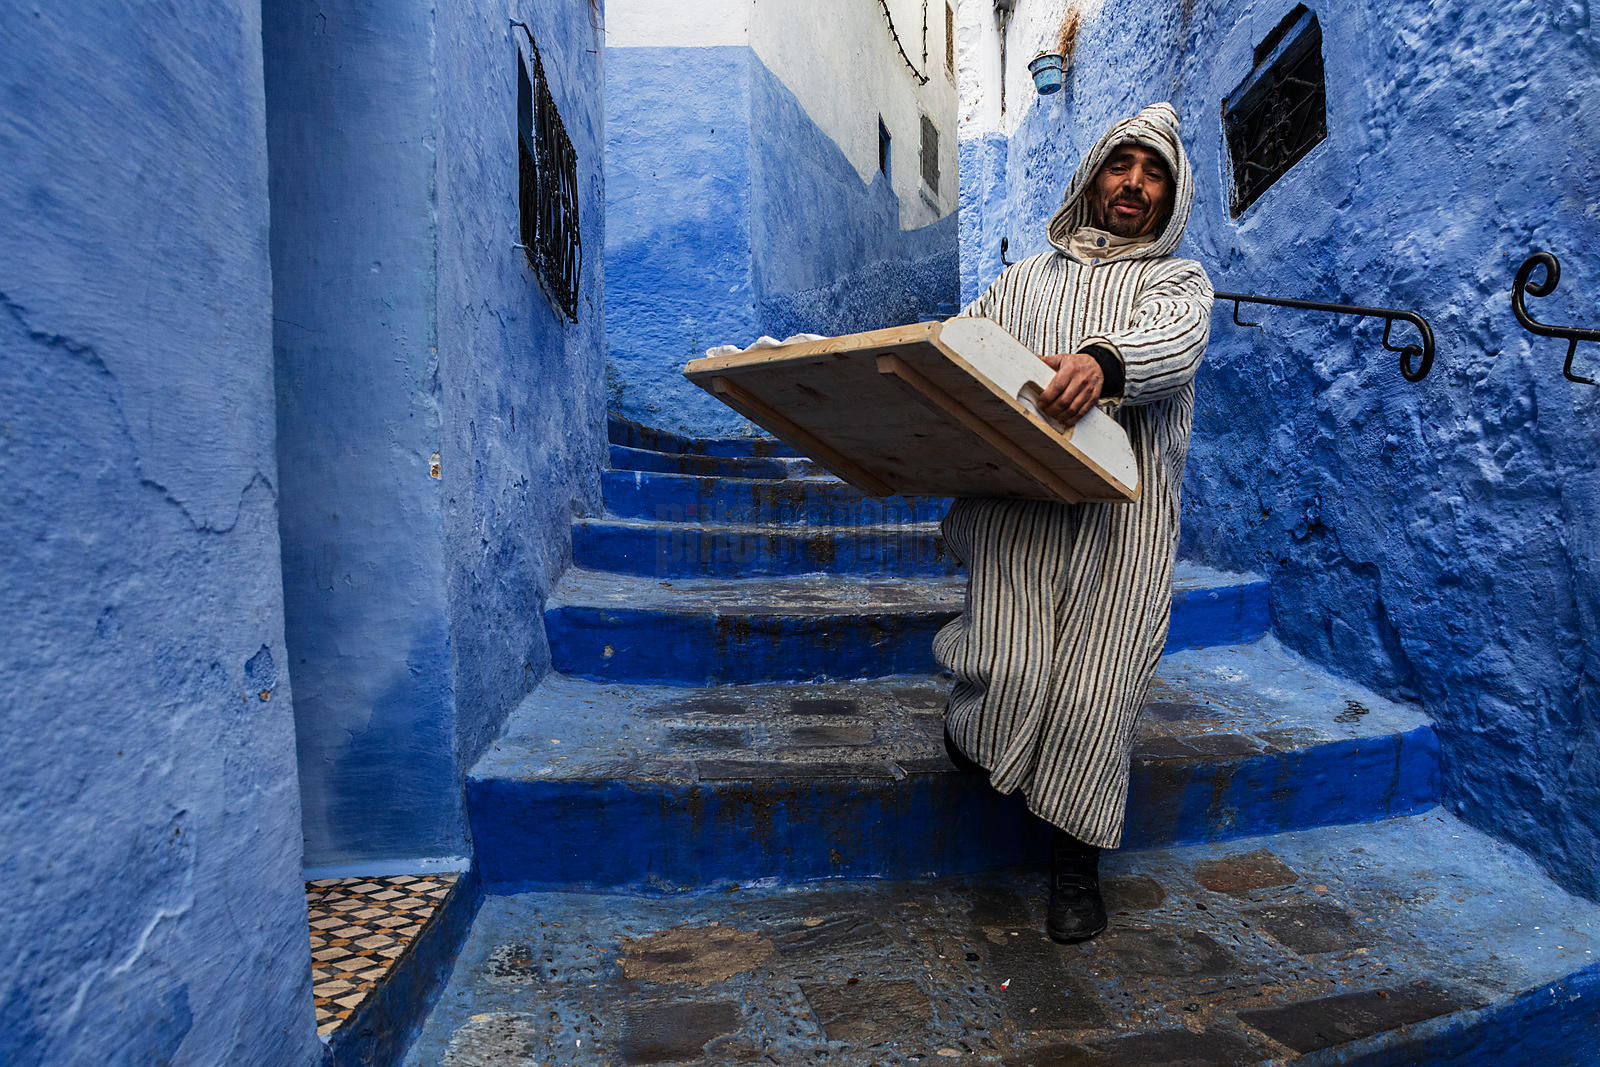 A Man Carries Fresh Baked Goods in a Street in Chefchaouen